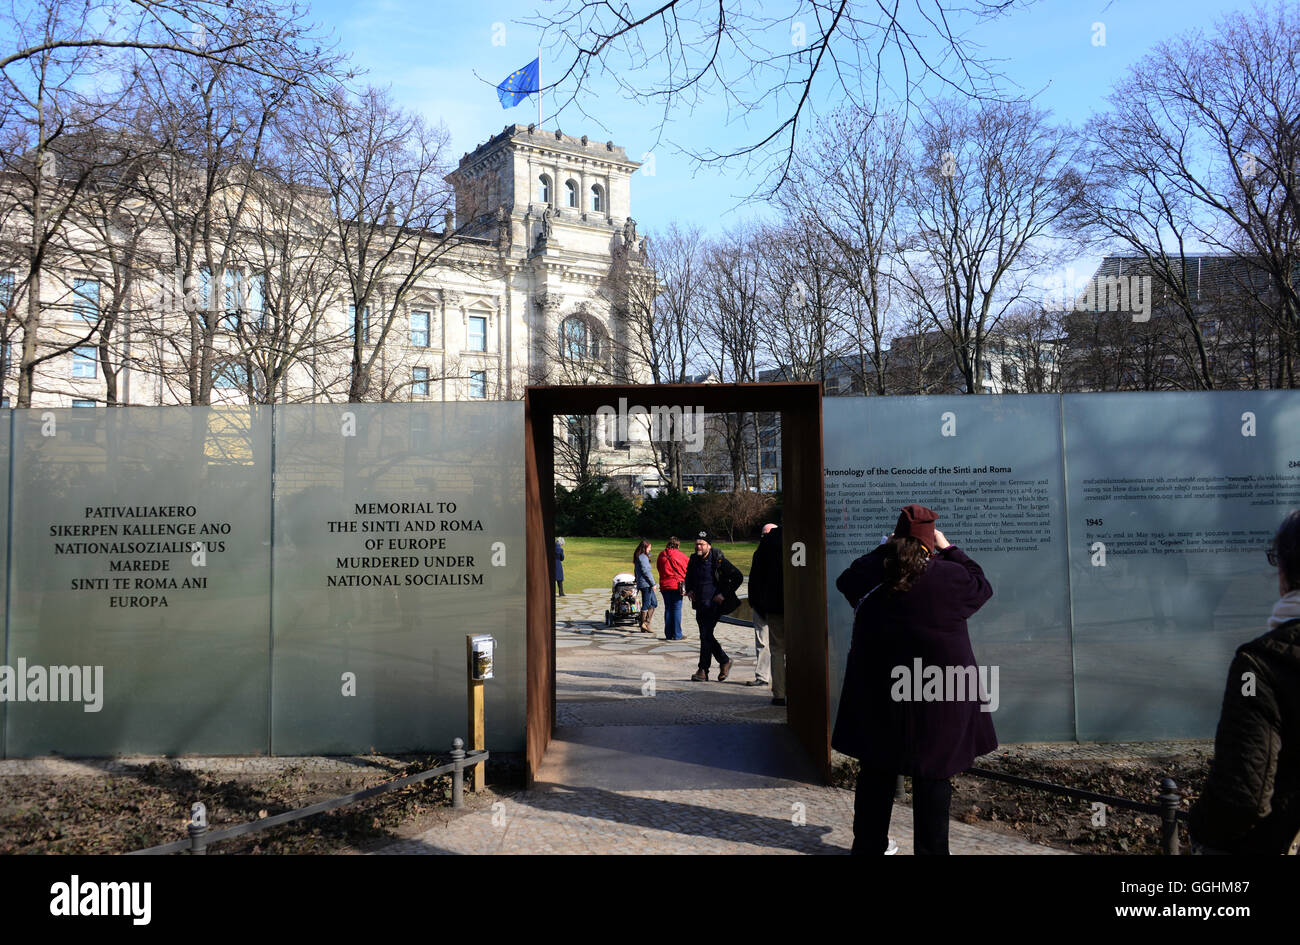 Memorial for the Sinti and Roma near the Reichstag, Berlin, Germany Stock Photo